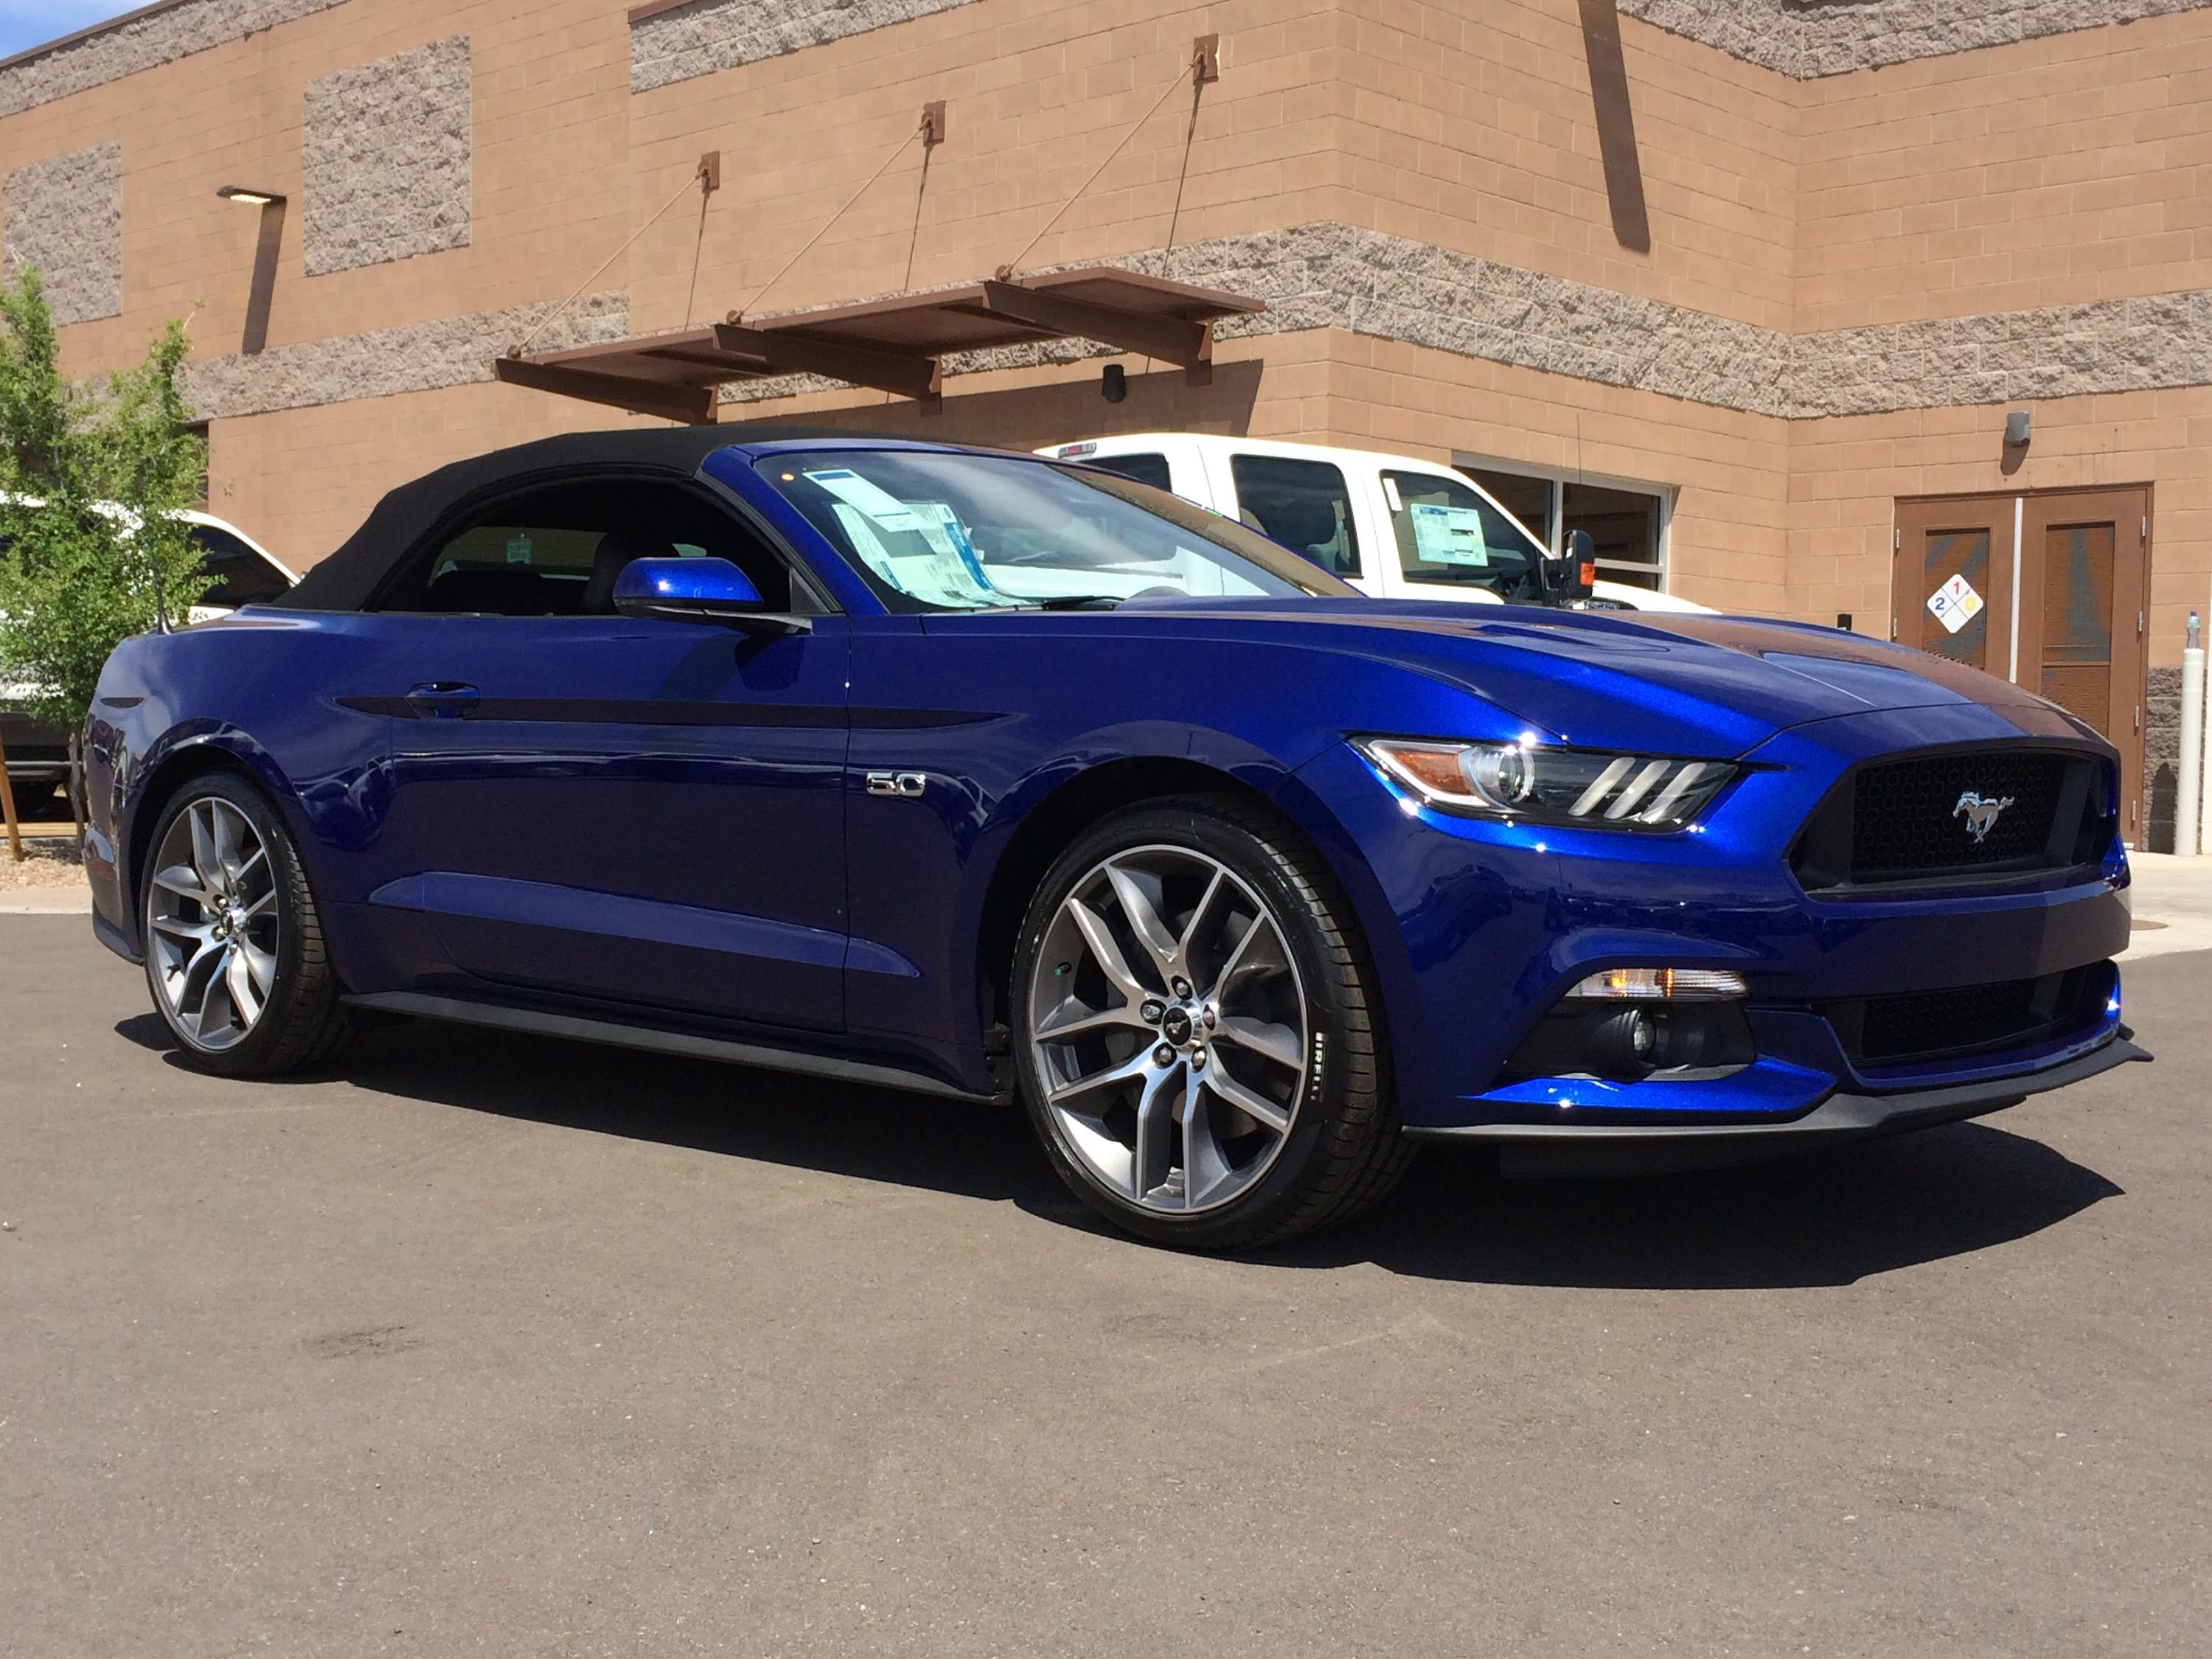 2015 mustang gt convertible deep impact blue and it does look like this in certain lighting